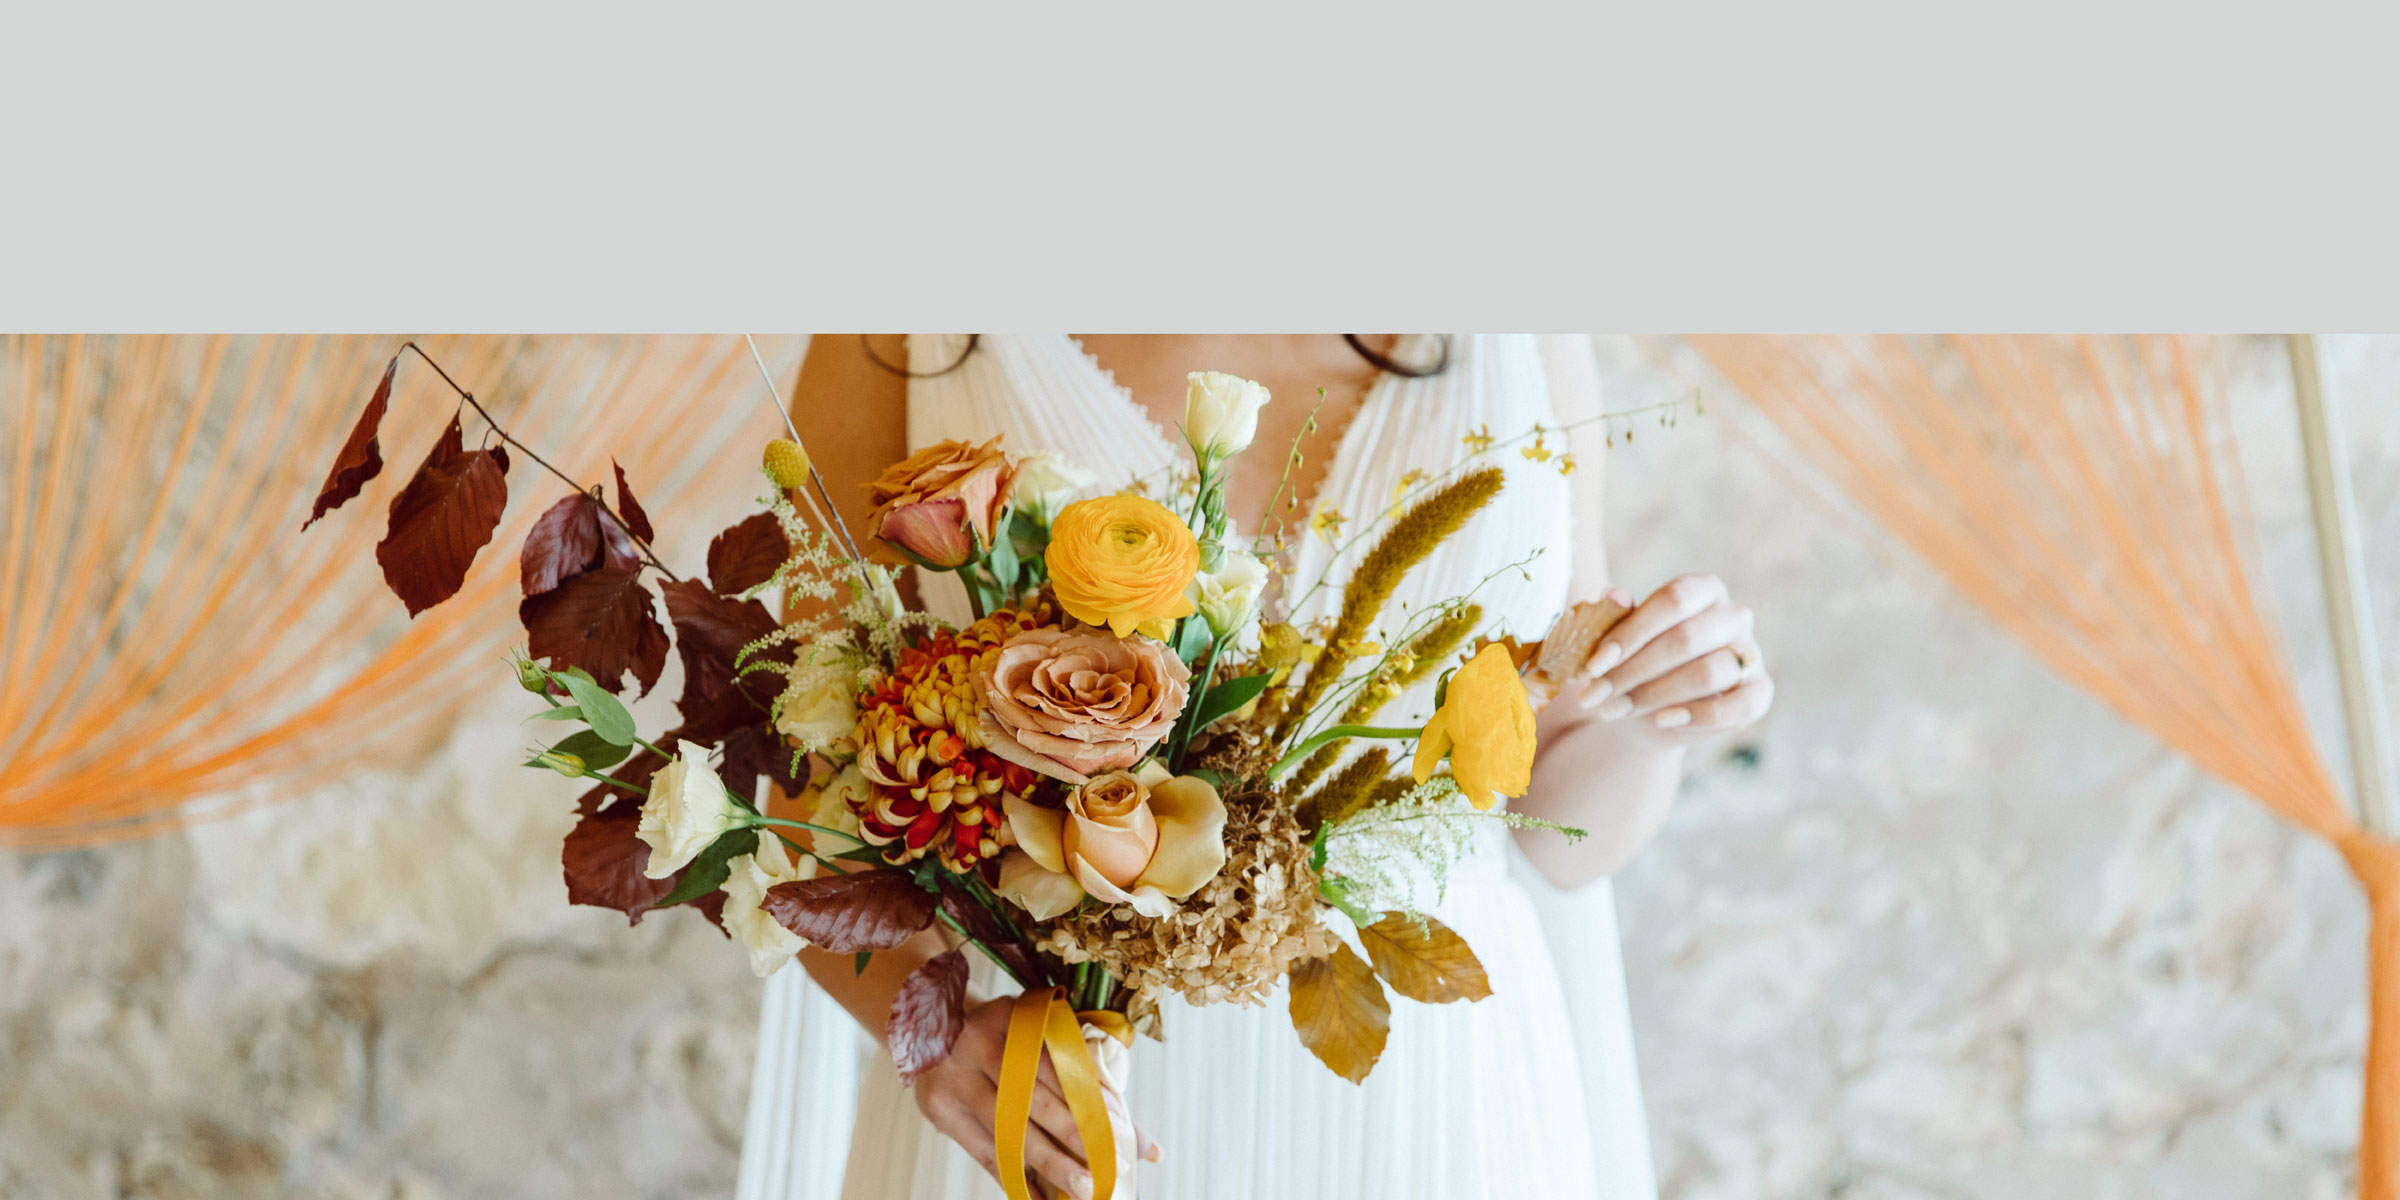 Top 2020 Wedding Color Trends Spring Summer Fall Winter Truly Engaging By Magnetstreet